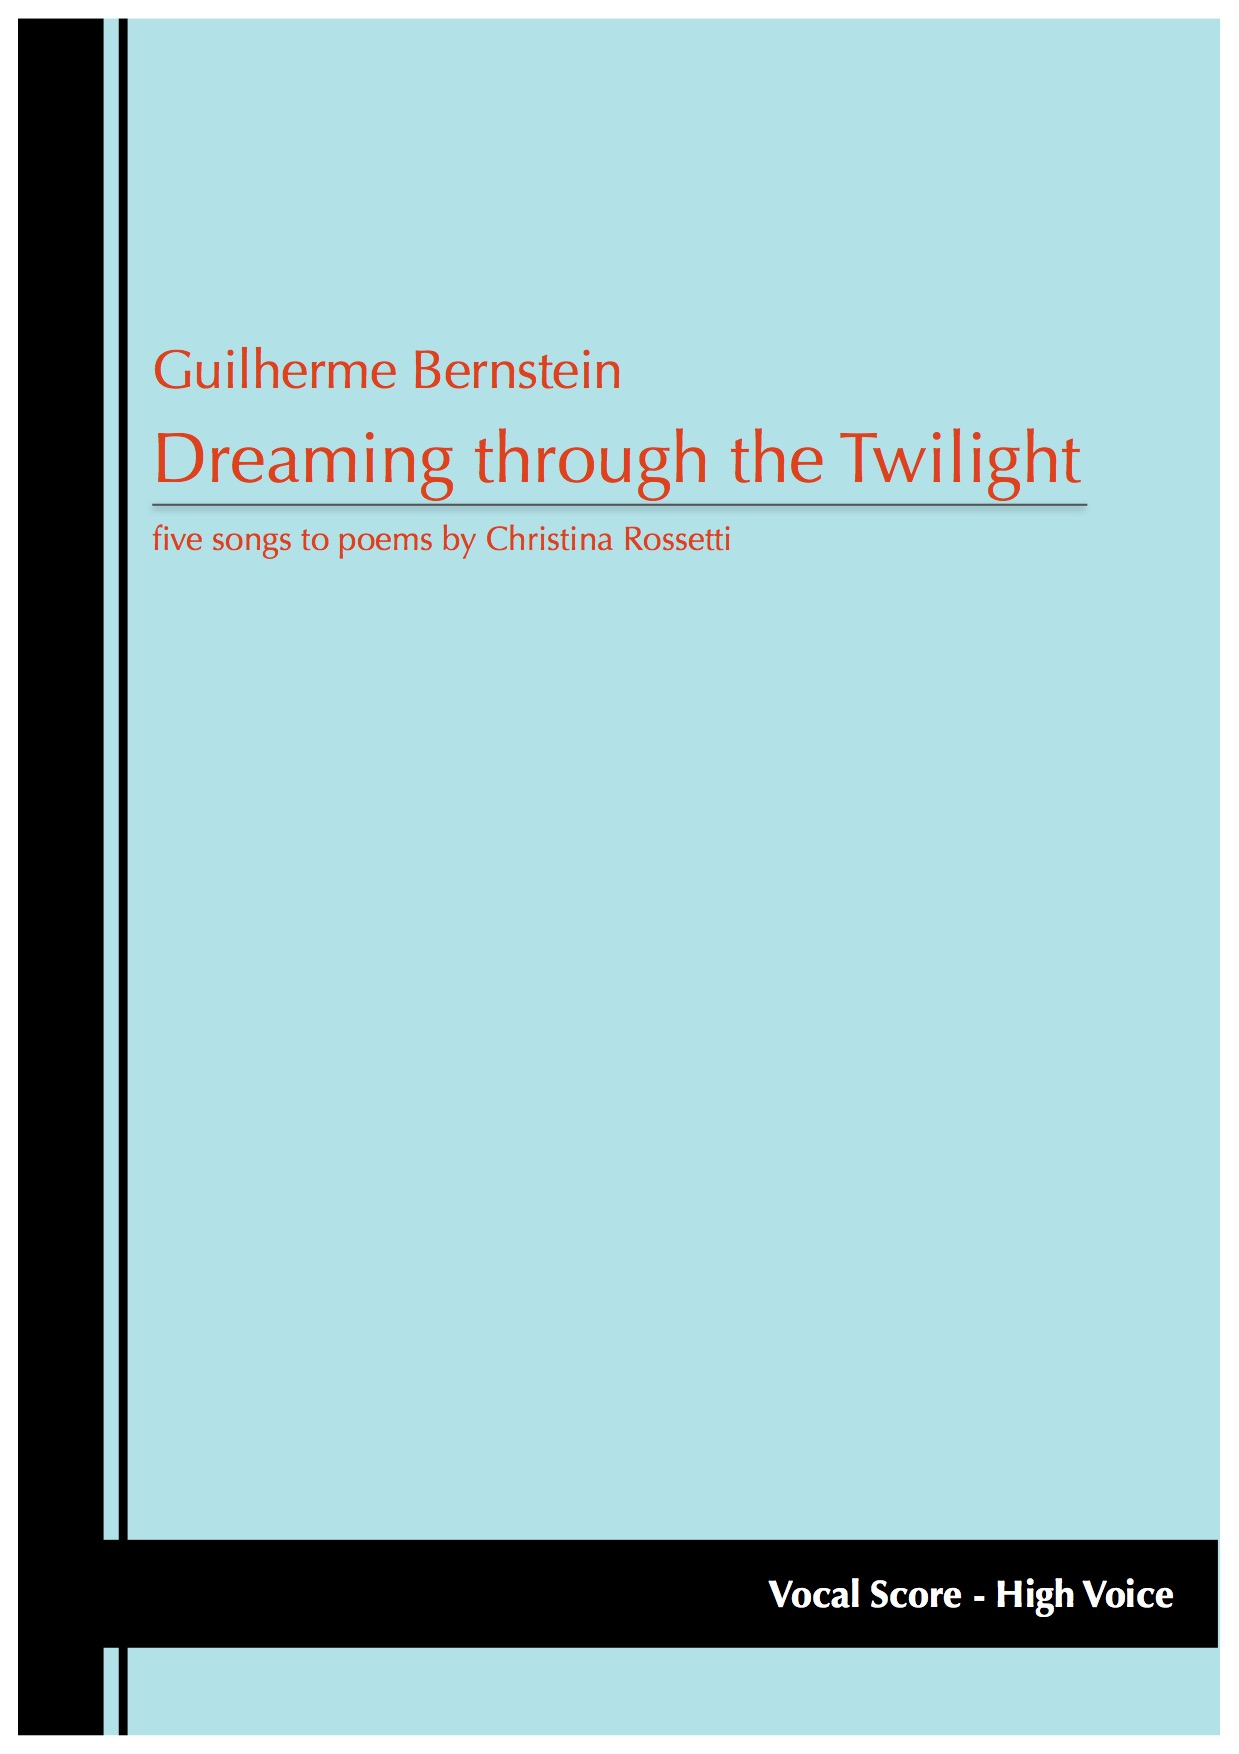 Dreaming_through_the_Twilight - sample cover